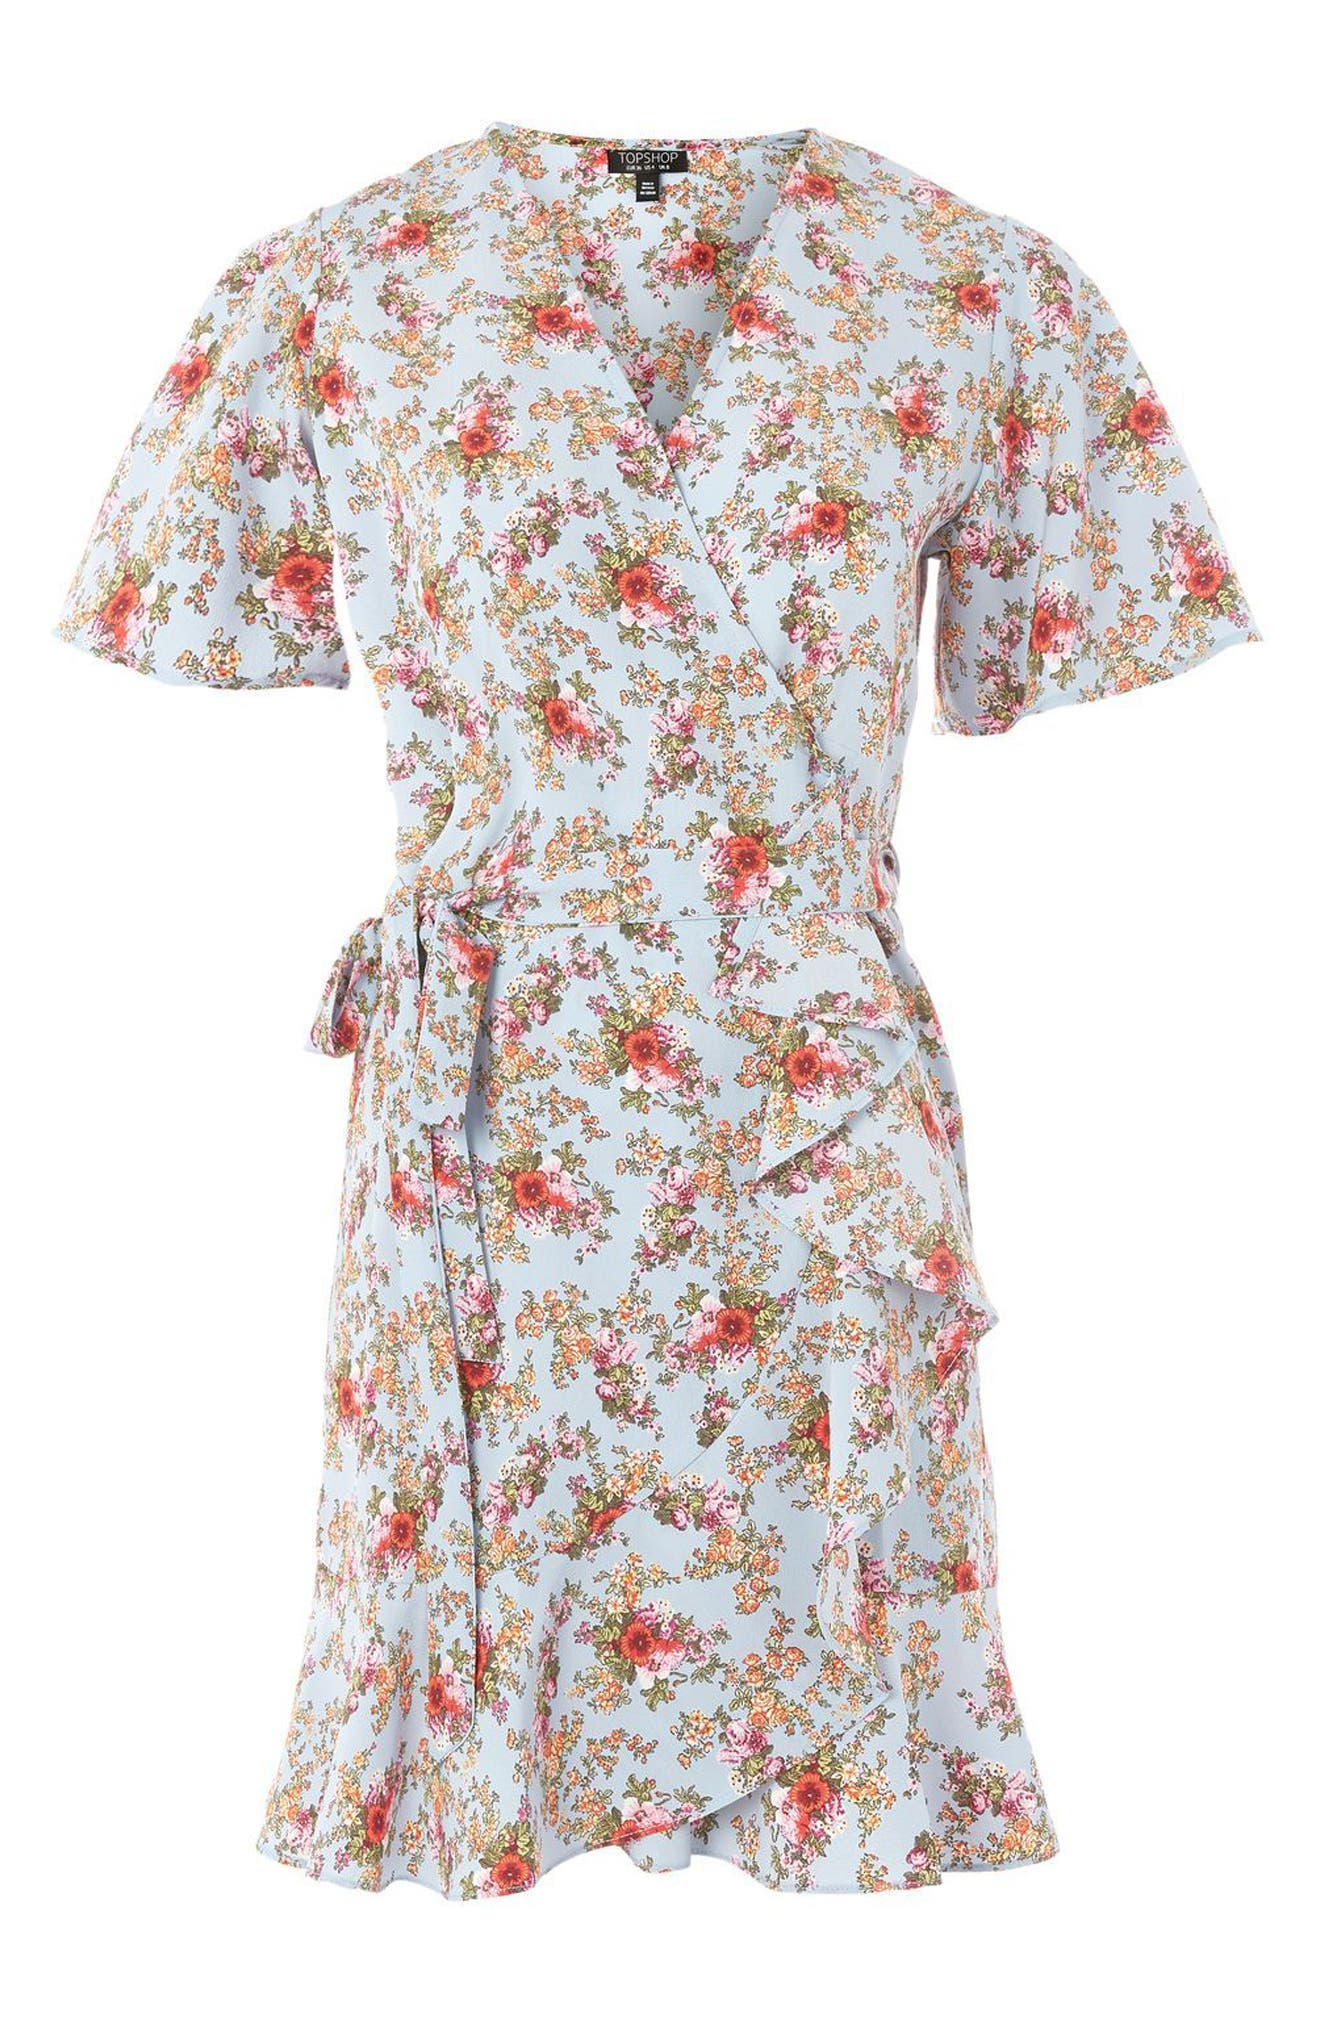 Main Image - Topshop Confetti Floral Wrap Tea Dress